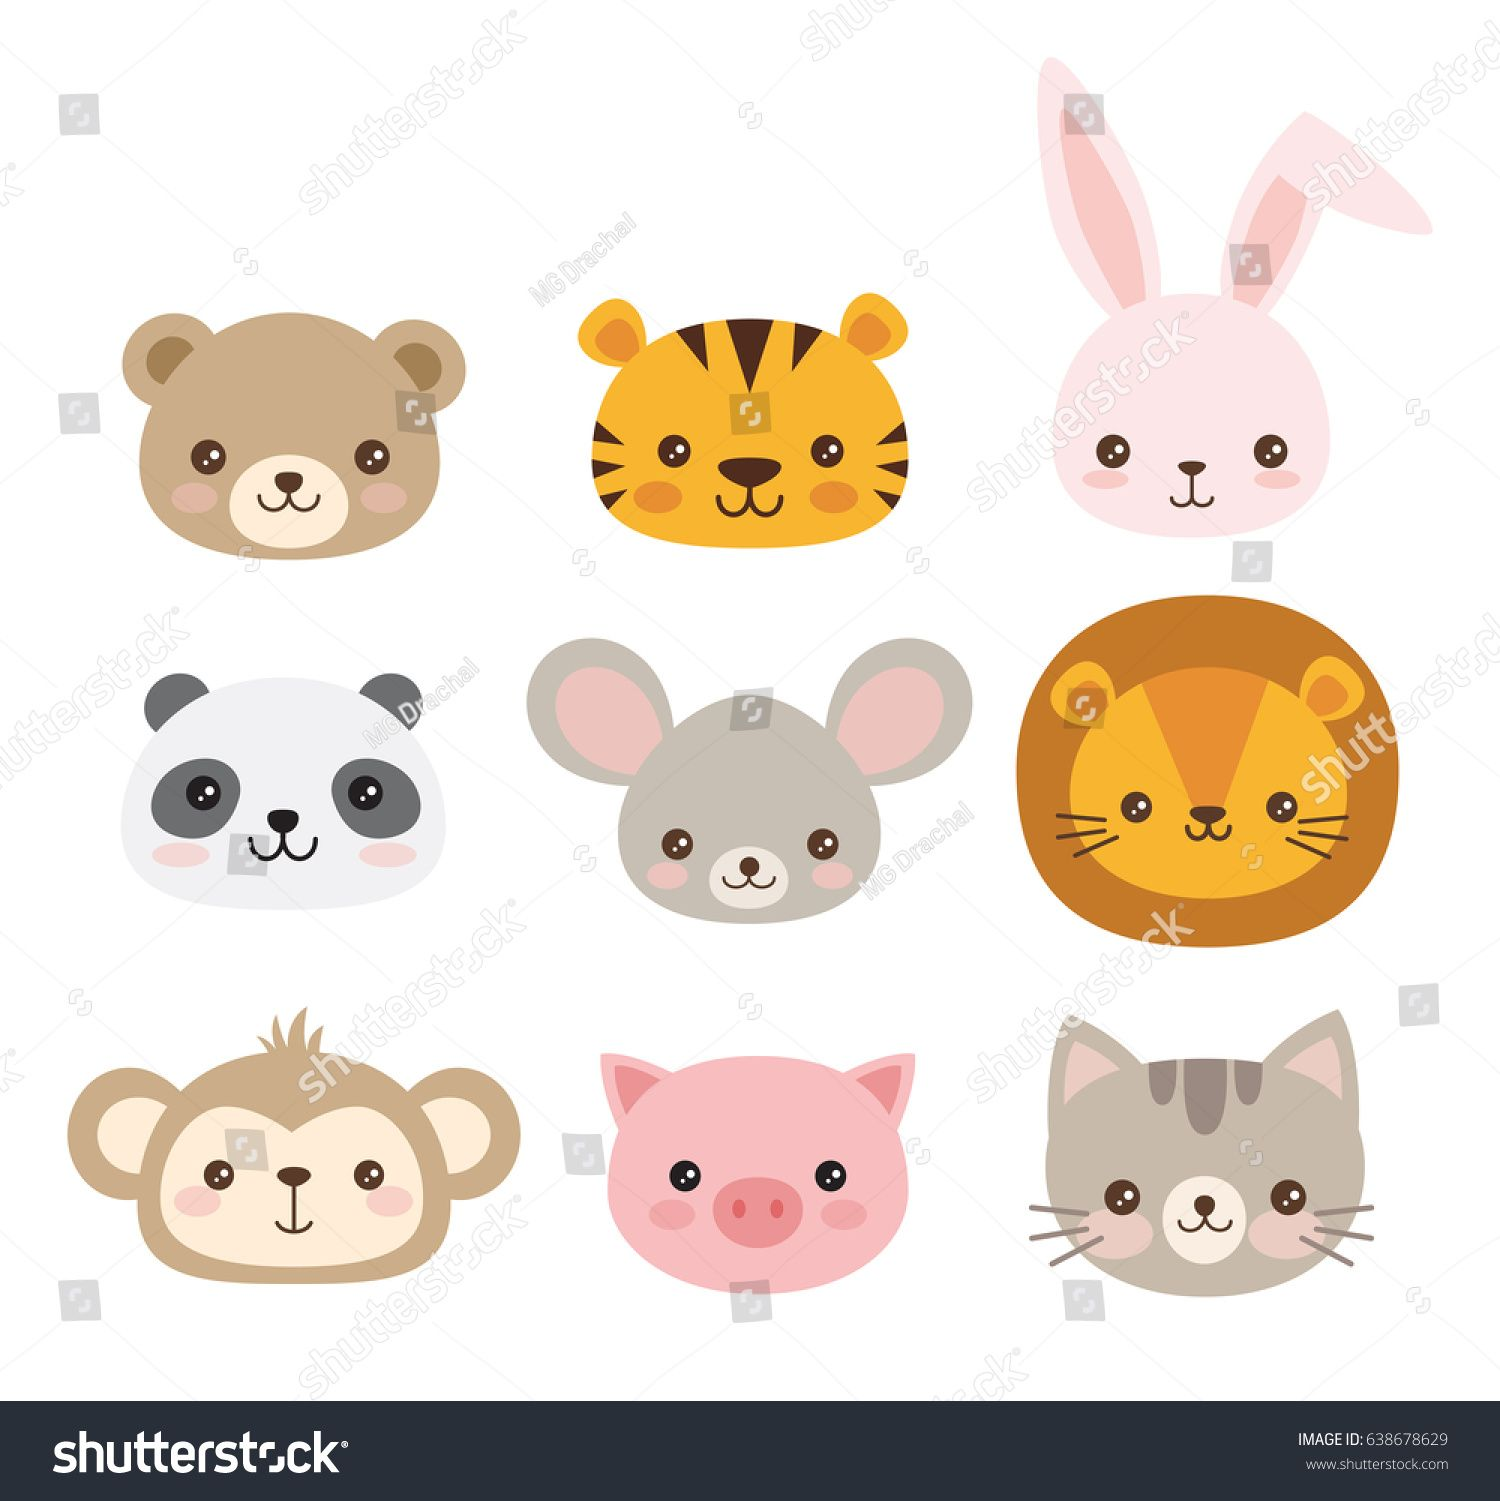 Cute Animal Faces A Set Of Vector Illustrations Of Cartoon Animal Heads Including Bear Pig Mouse Bear Face Drawing Monkey Illustration Cute Animal Drawings